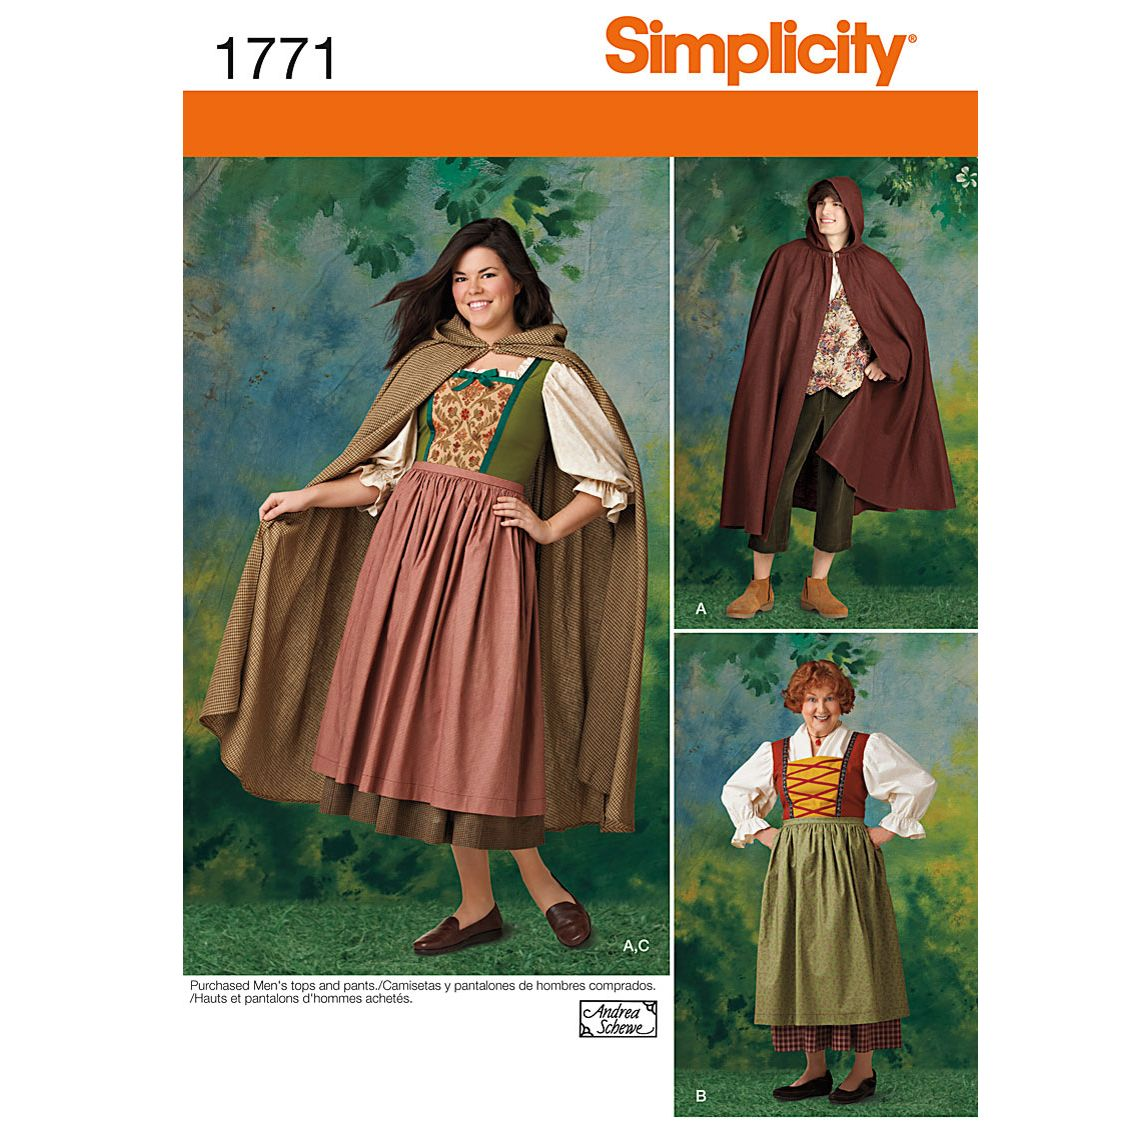 Simplicity men womens robin hood costume sewing pattern 1771 buysimplicity men womens robin hood costume sewing pattern 1771 online at johnlewis jeuxipadfo Images